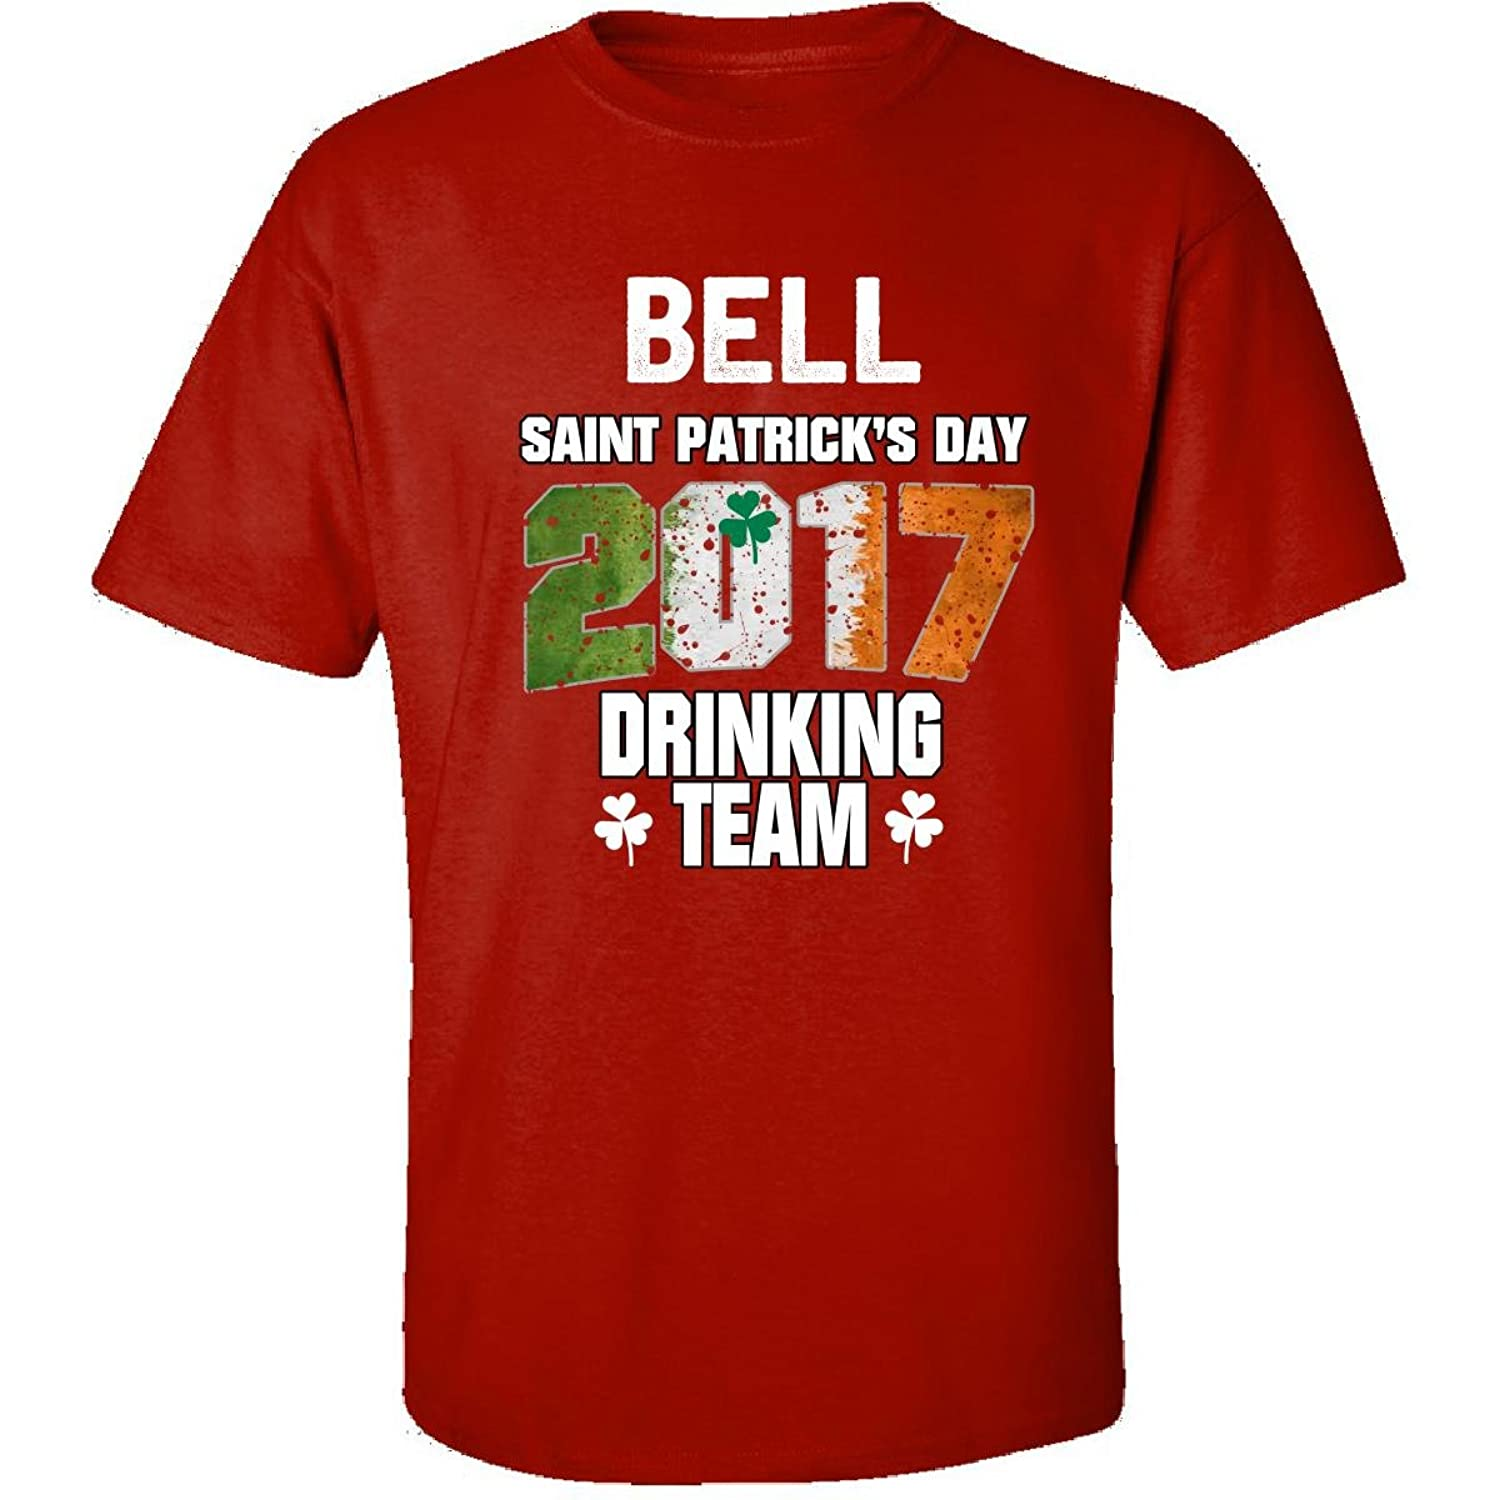 Bell Irish St Patricks Day 2017 Drinking Team - Adult Shirt